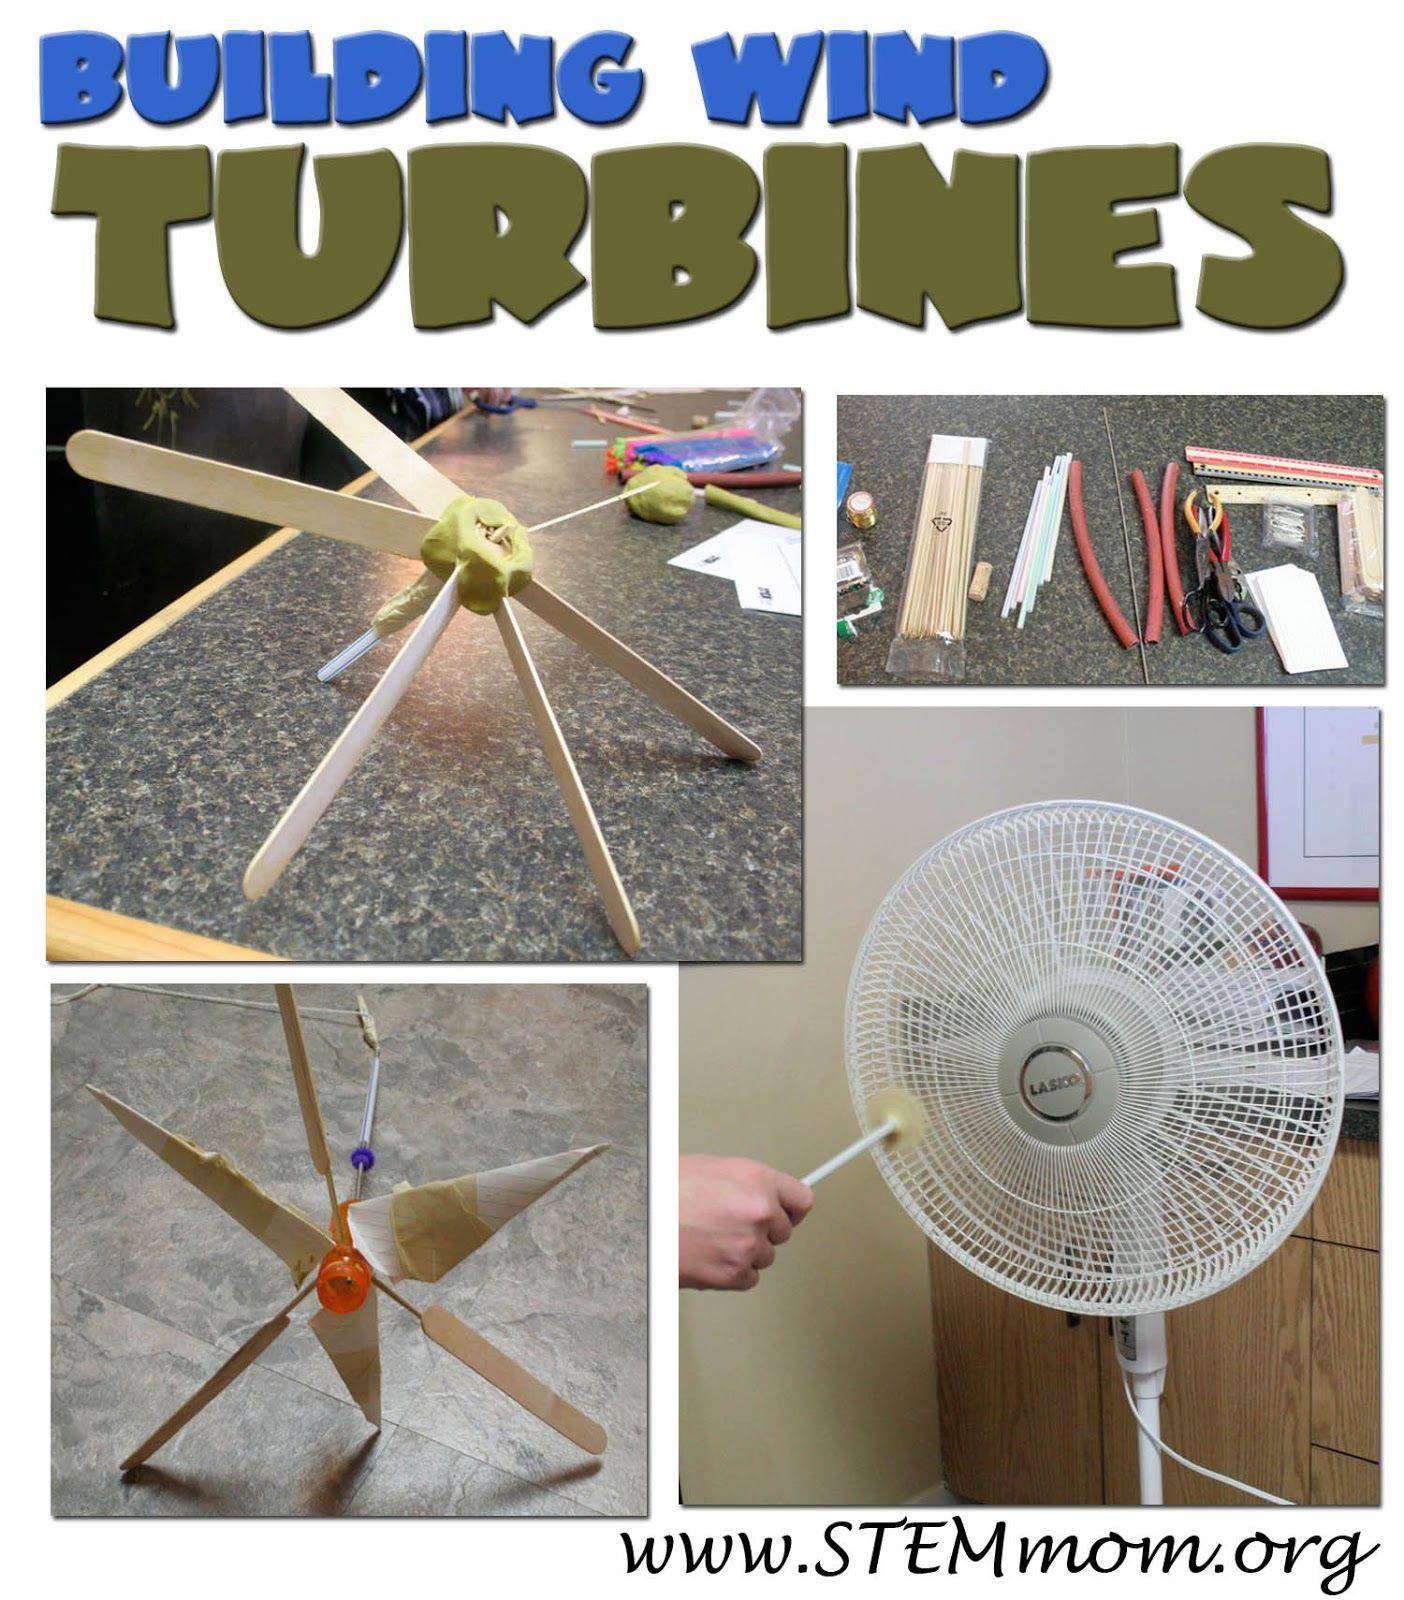 Building Turbines: Inquiry Engineering Lab: from STEMmom org